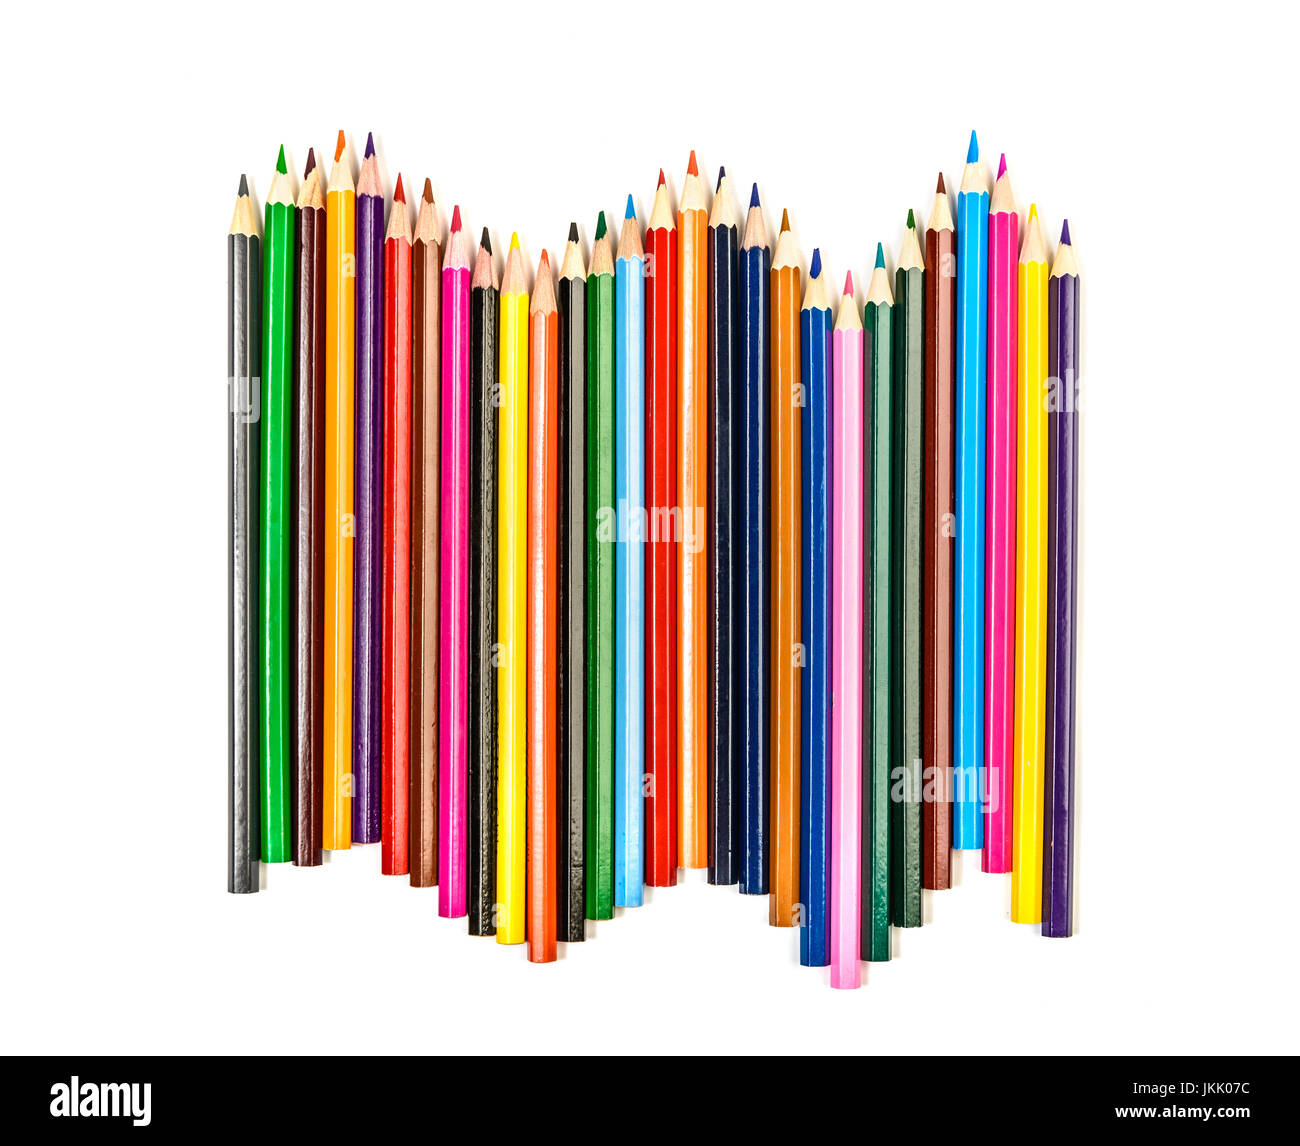 colorful pencils row isolated on white - Stock Image